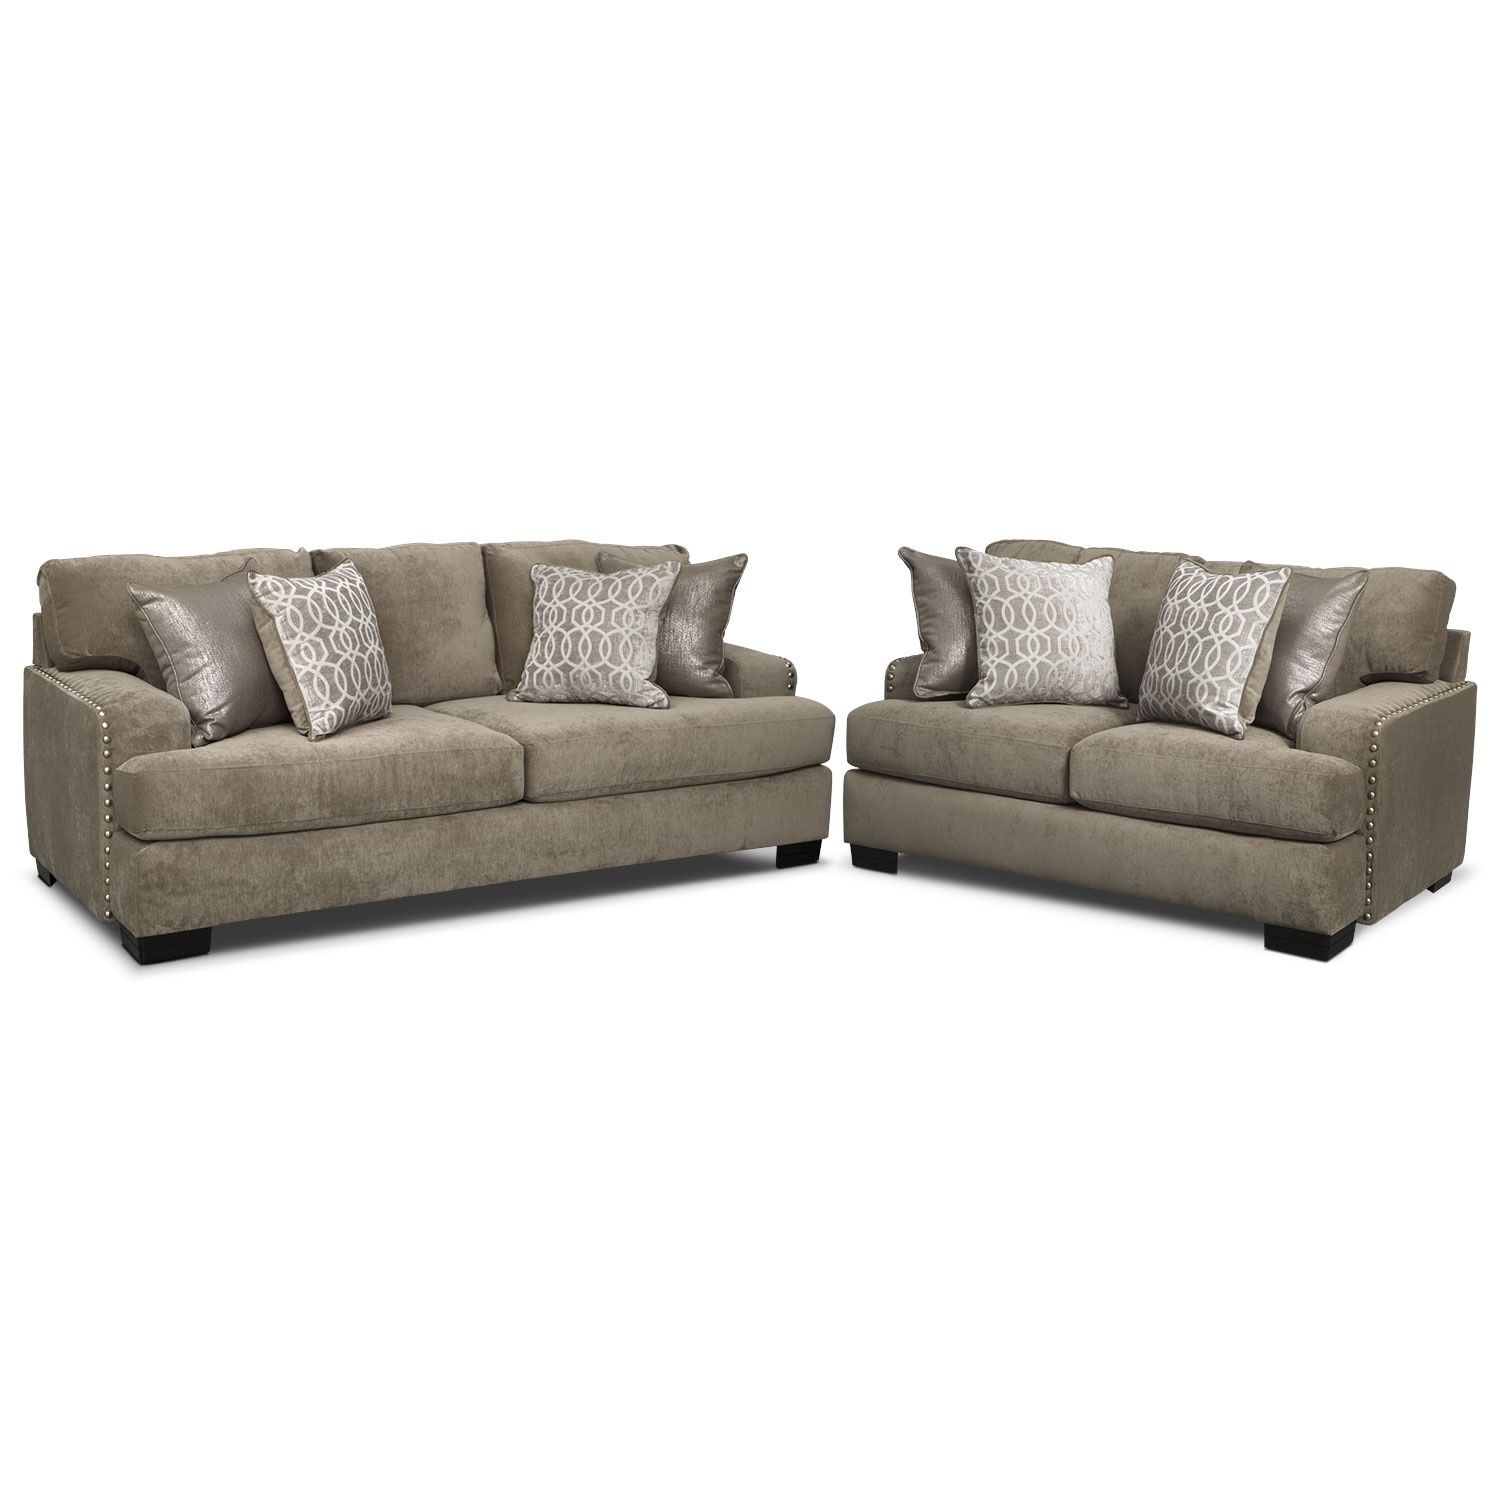 Tempo Sofa And Loveseat Set Platinum